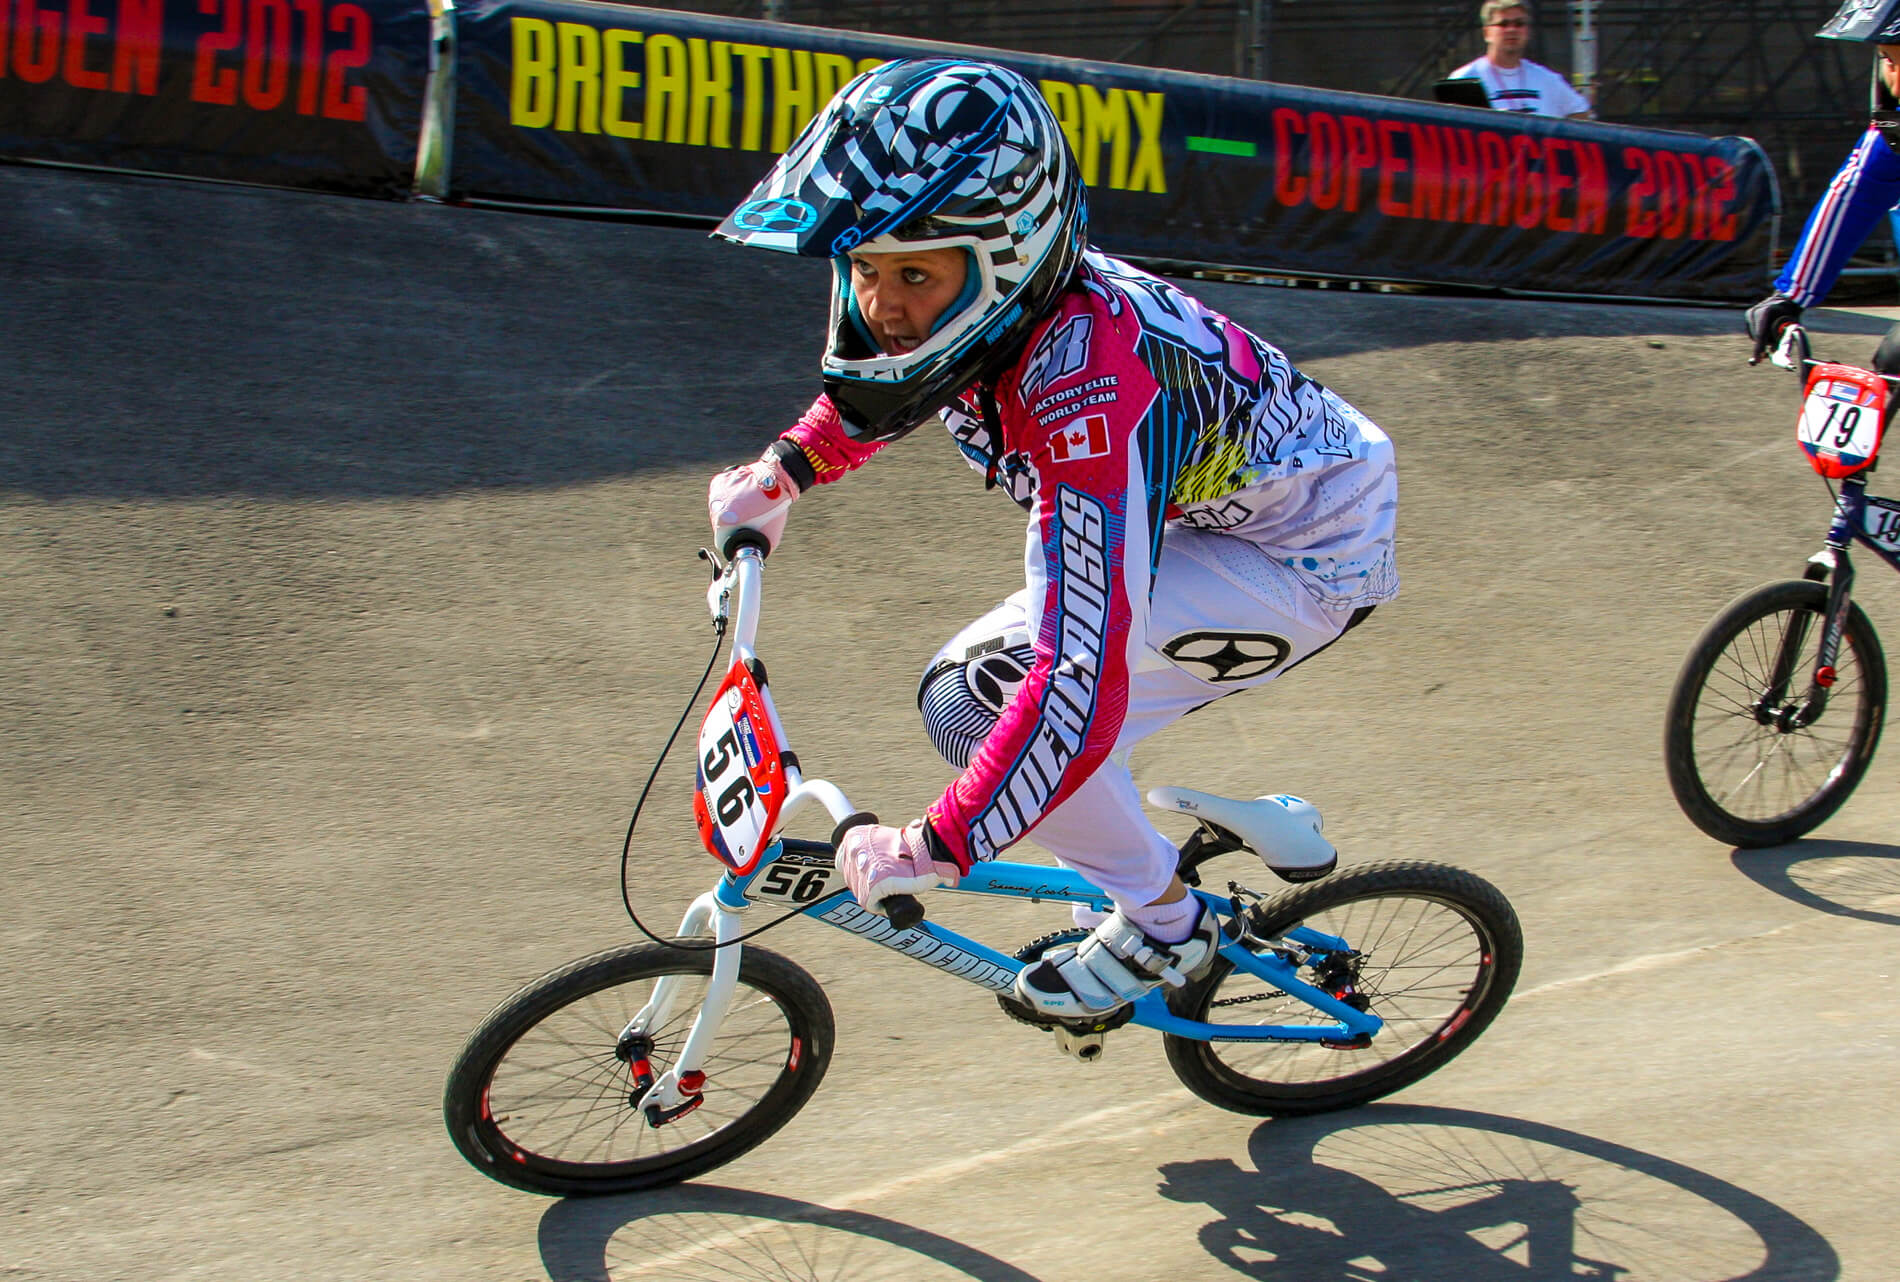 Sammy Cools Supercross BMX - Provided by Supercross BMX